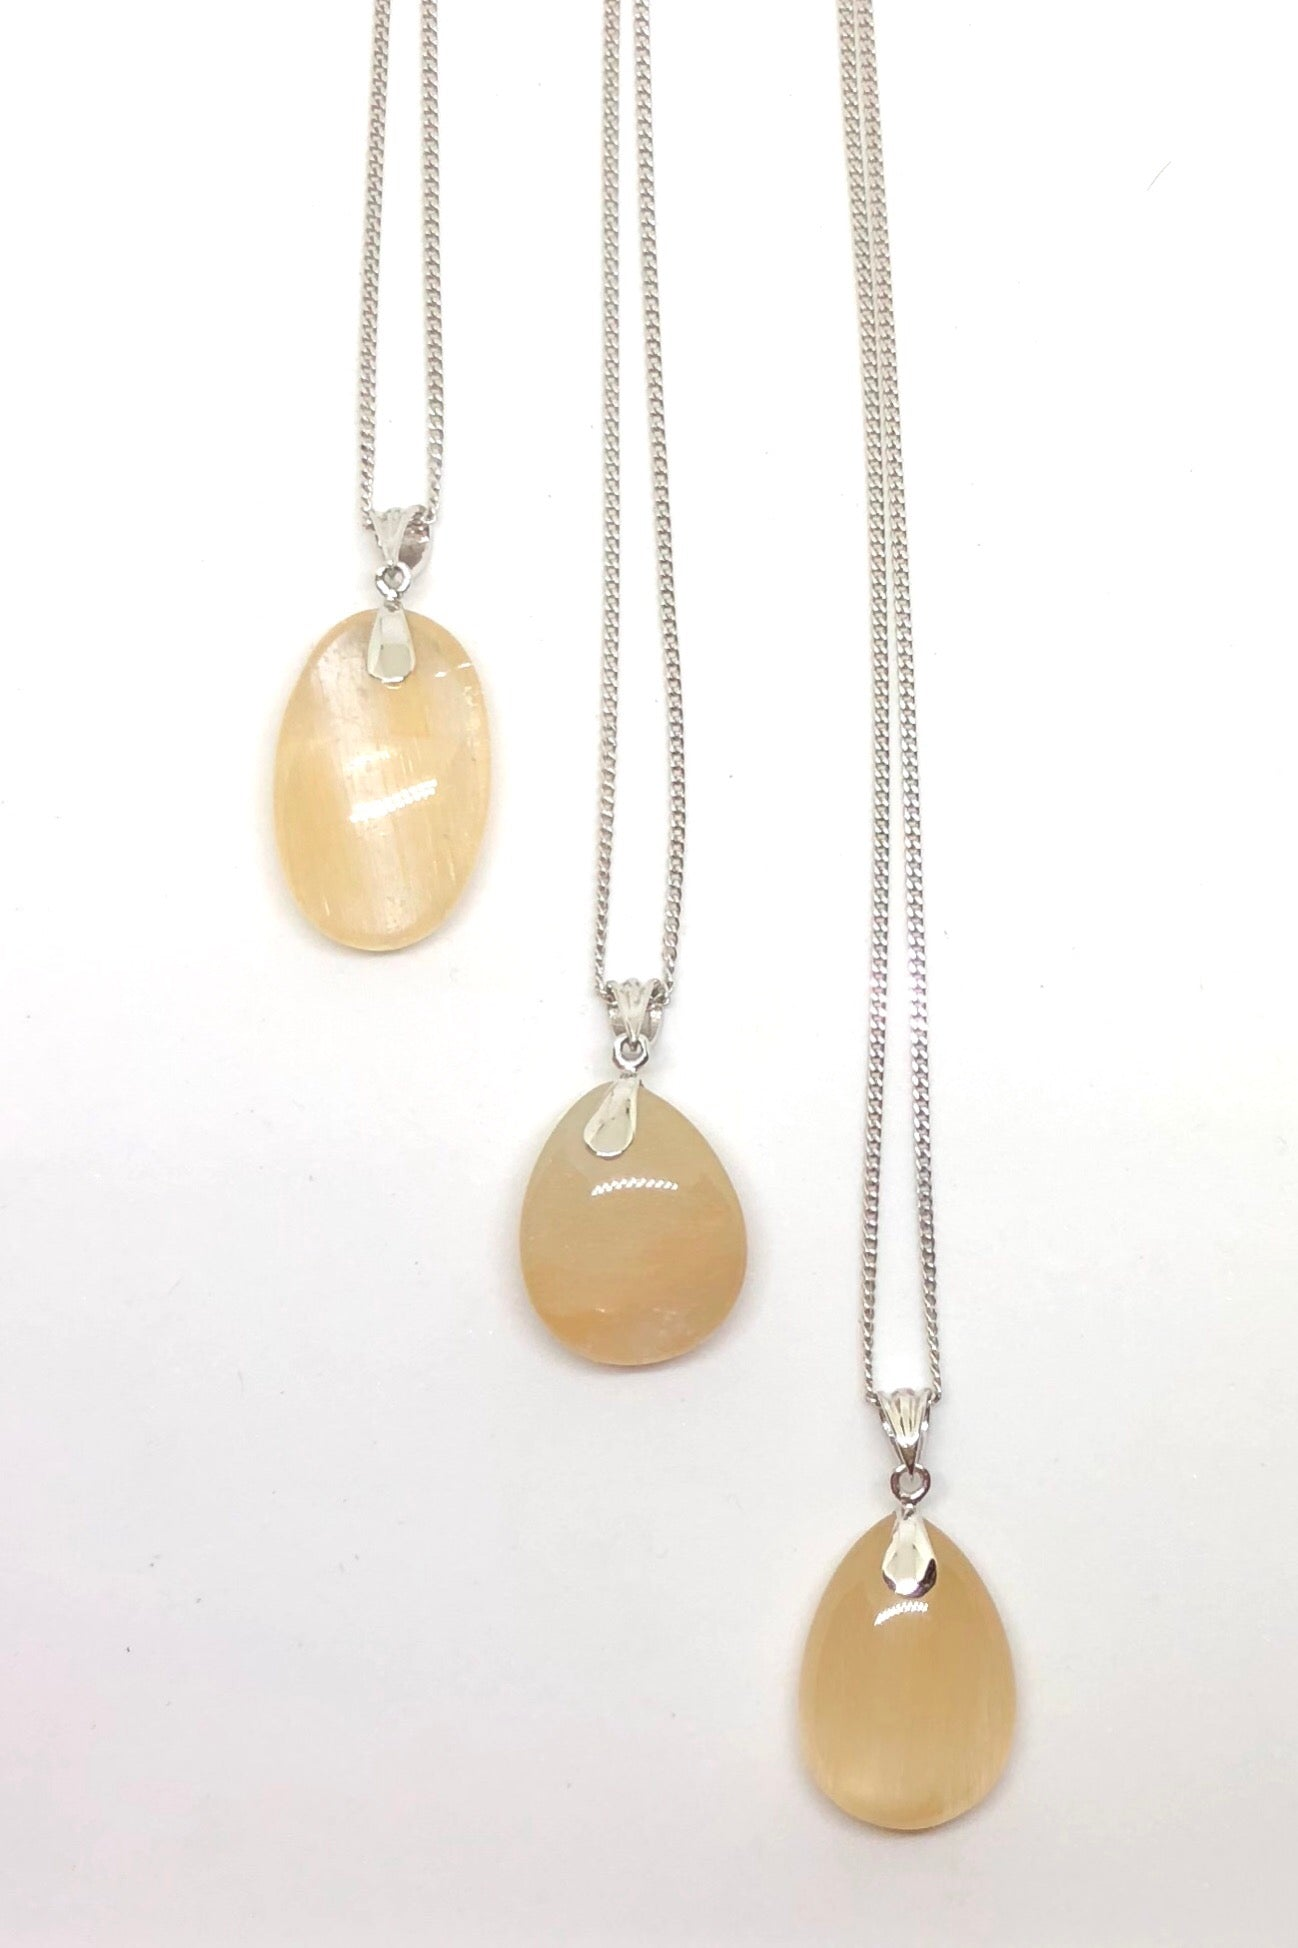 Pendant of Golden Rutilated Quartz on a Silver Chain 1